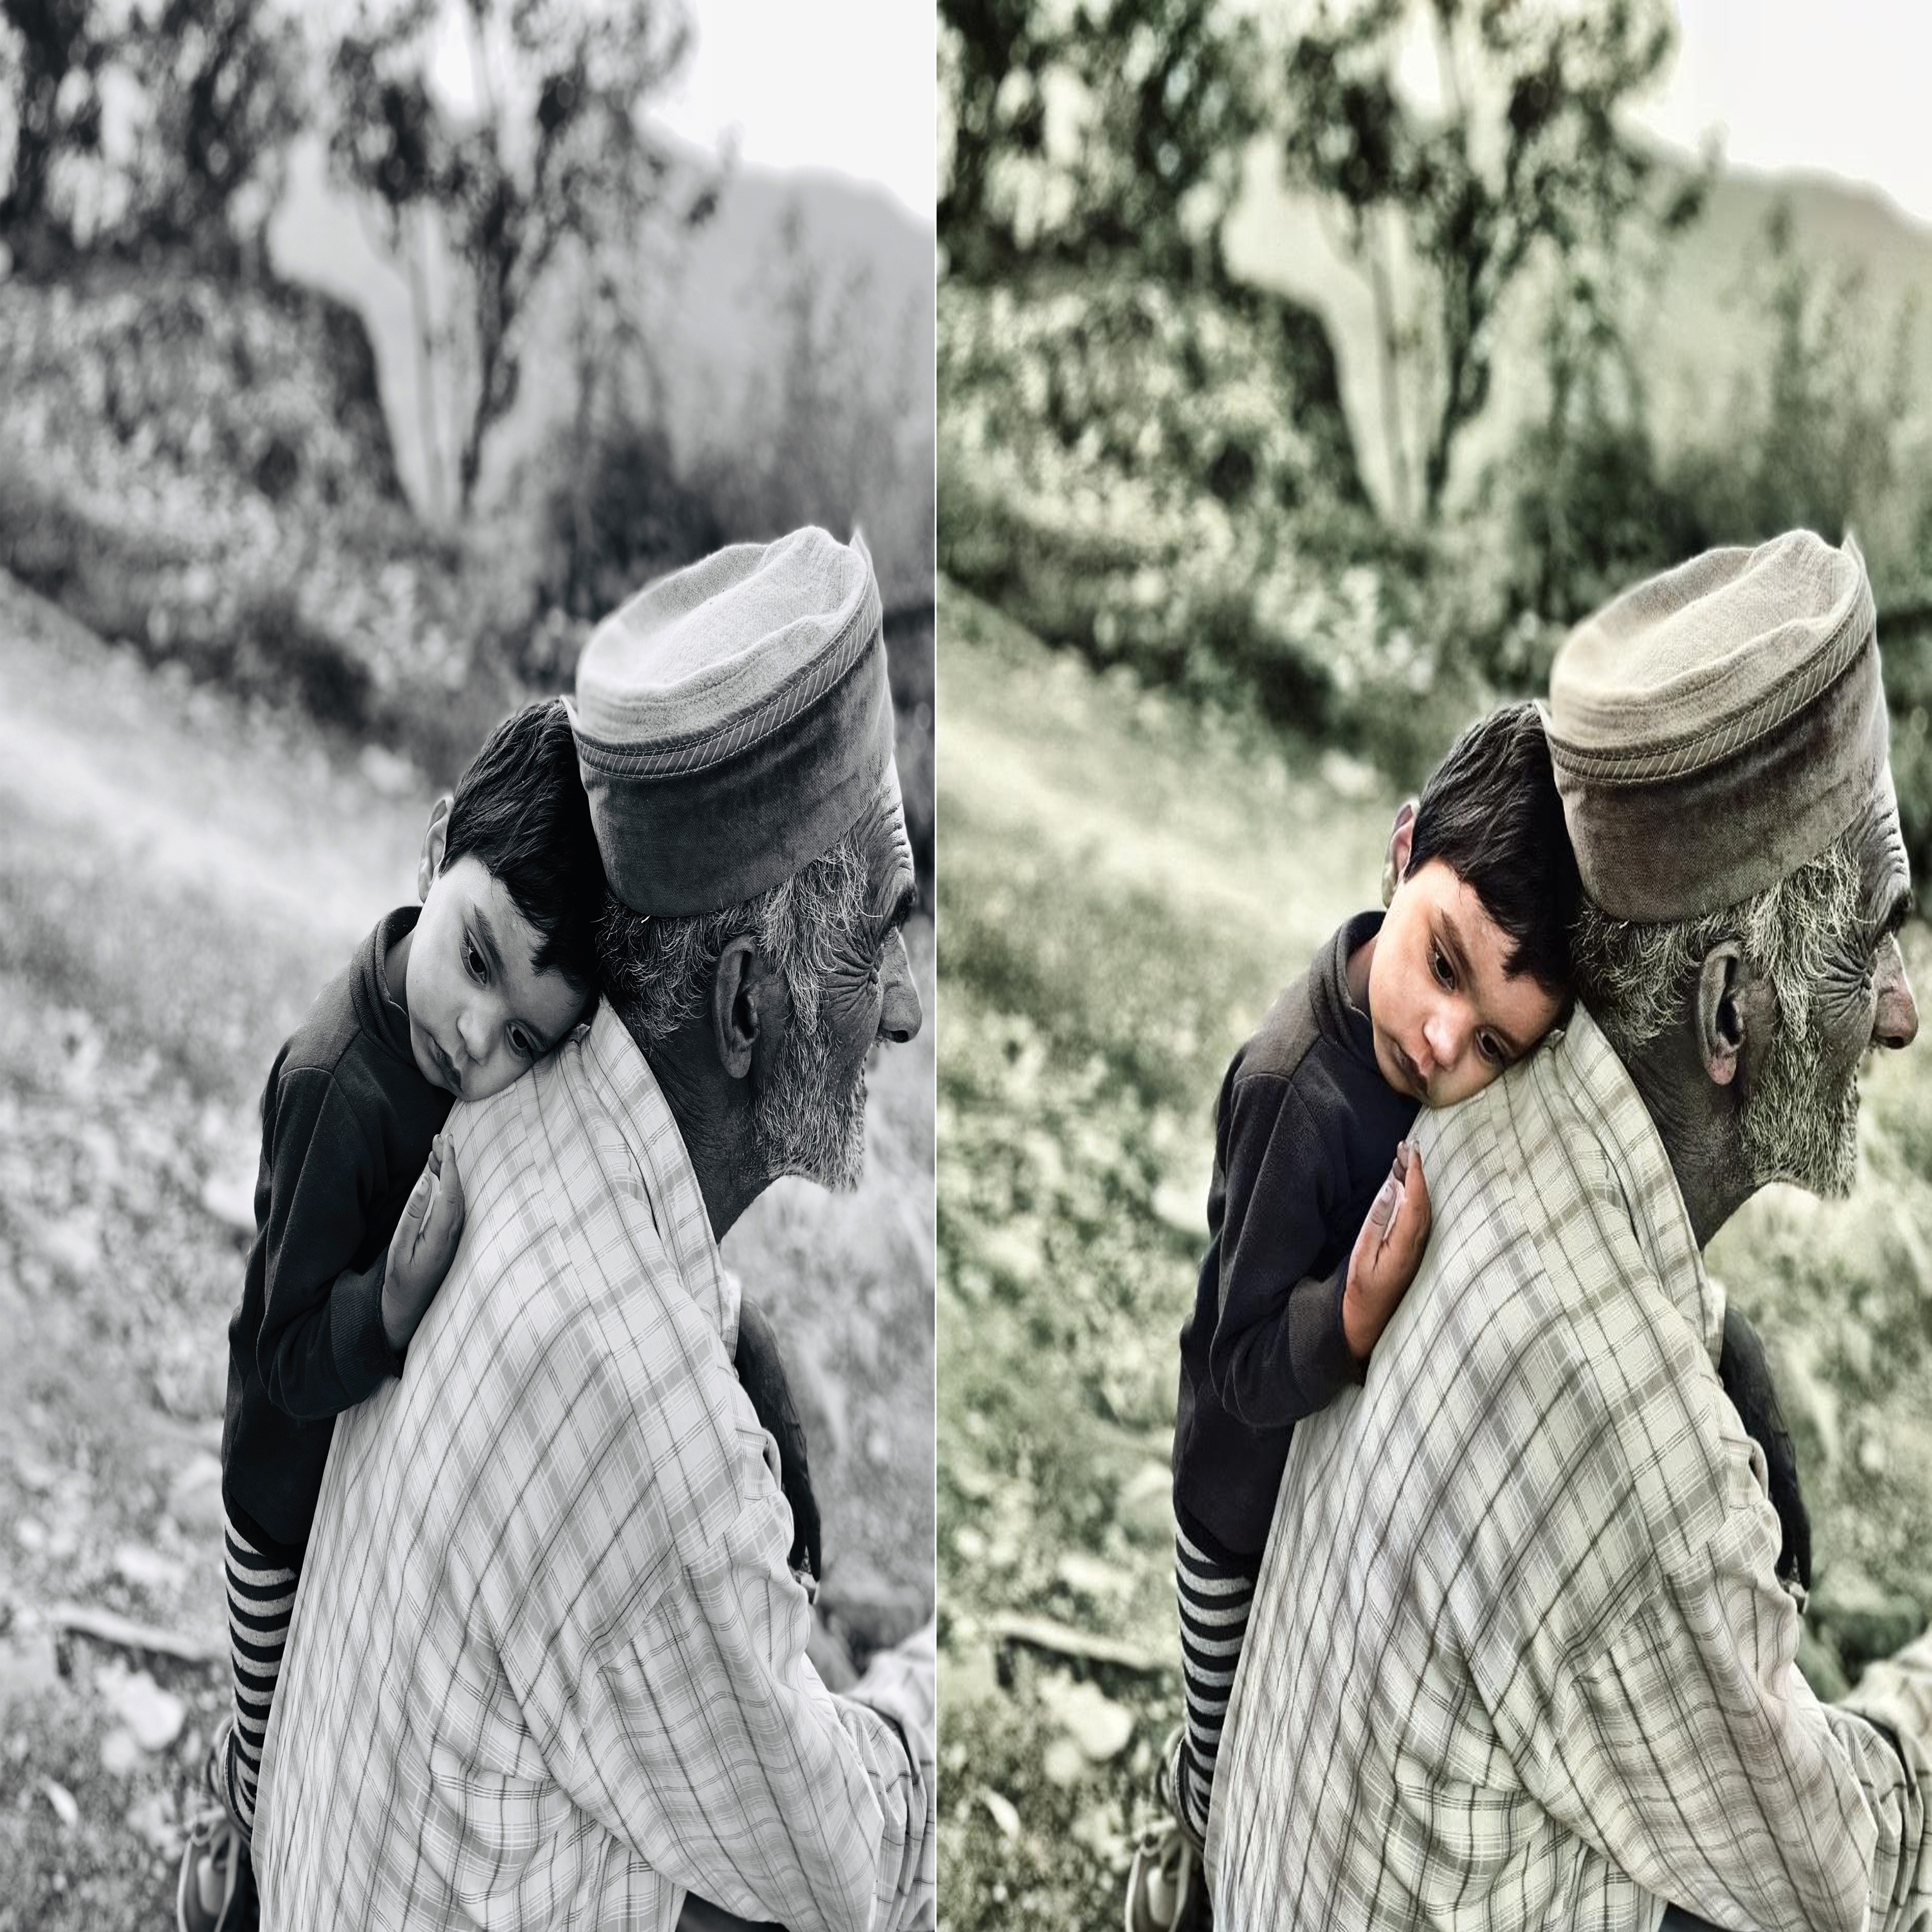 colorize a black and white 10 photo